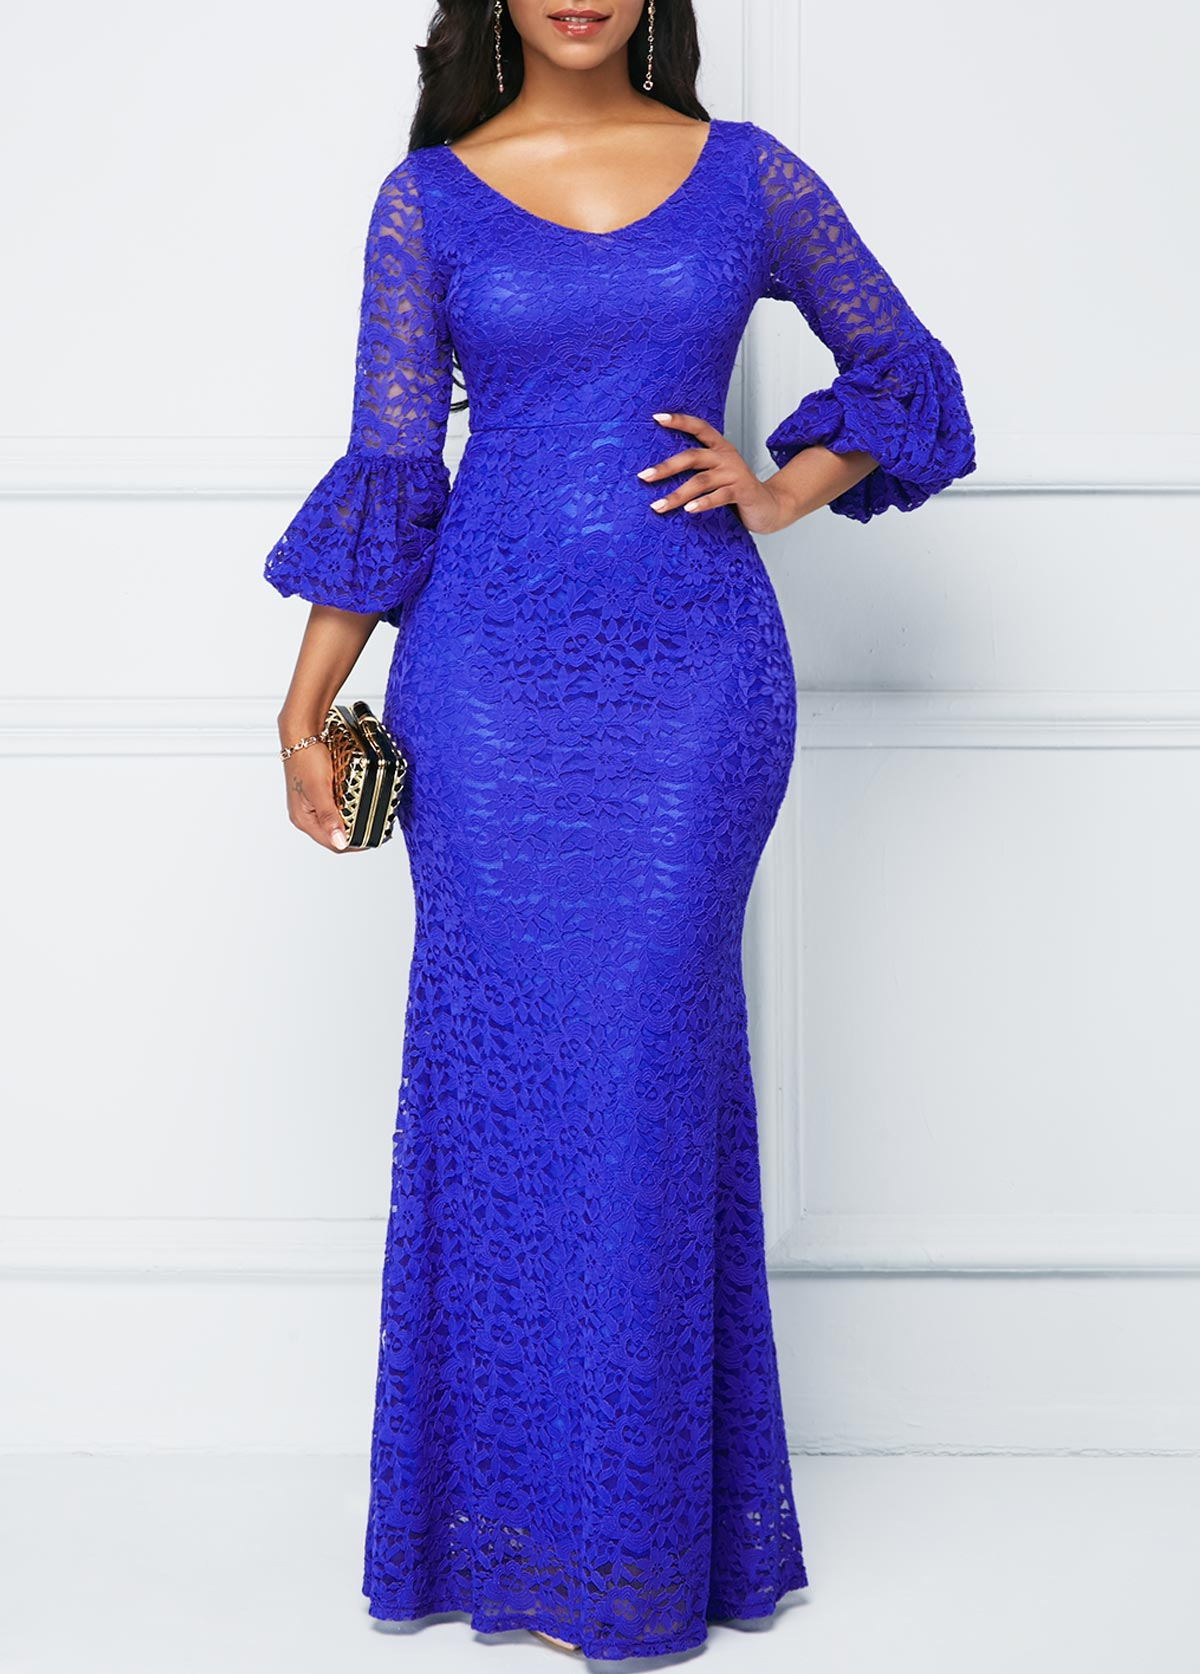 Lantern Sleeve Royal Blue Lace Dress